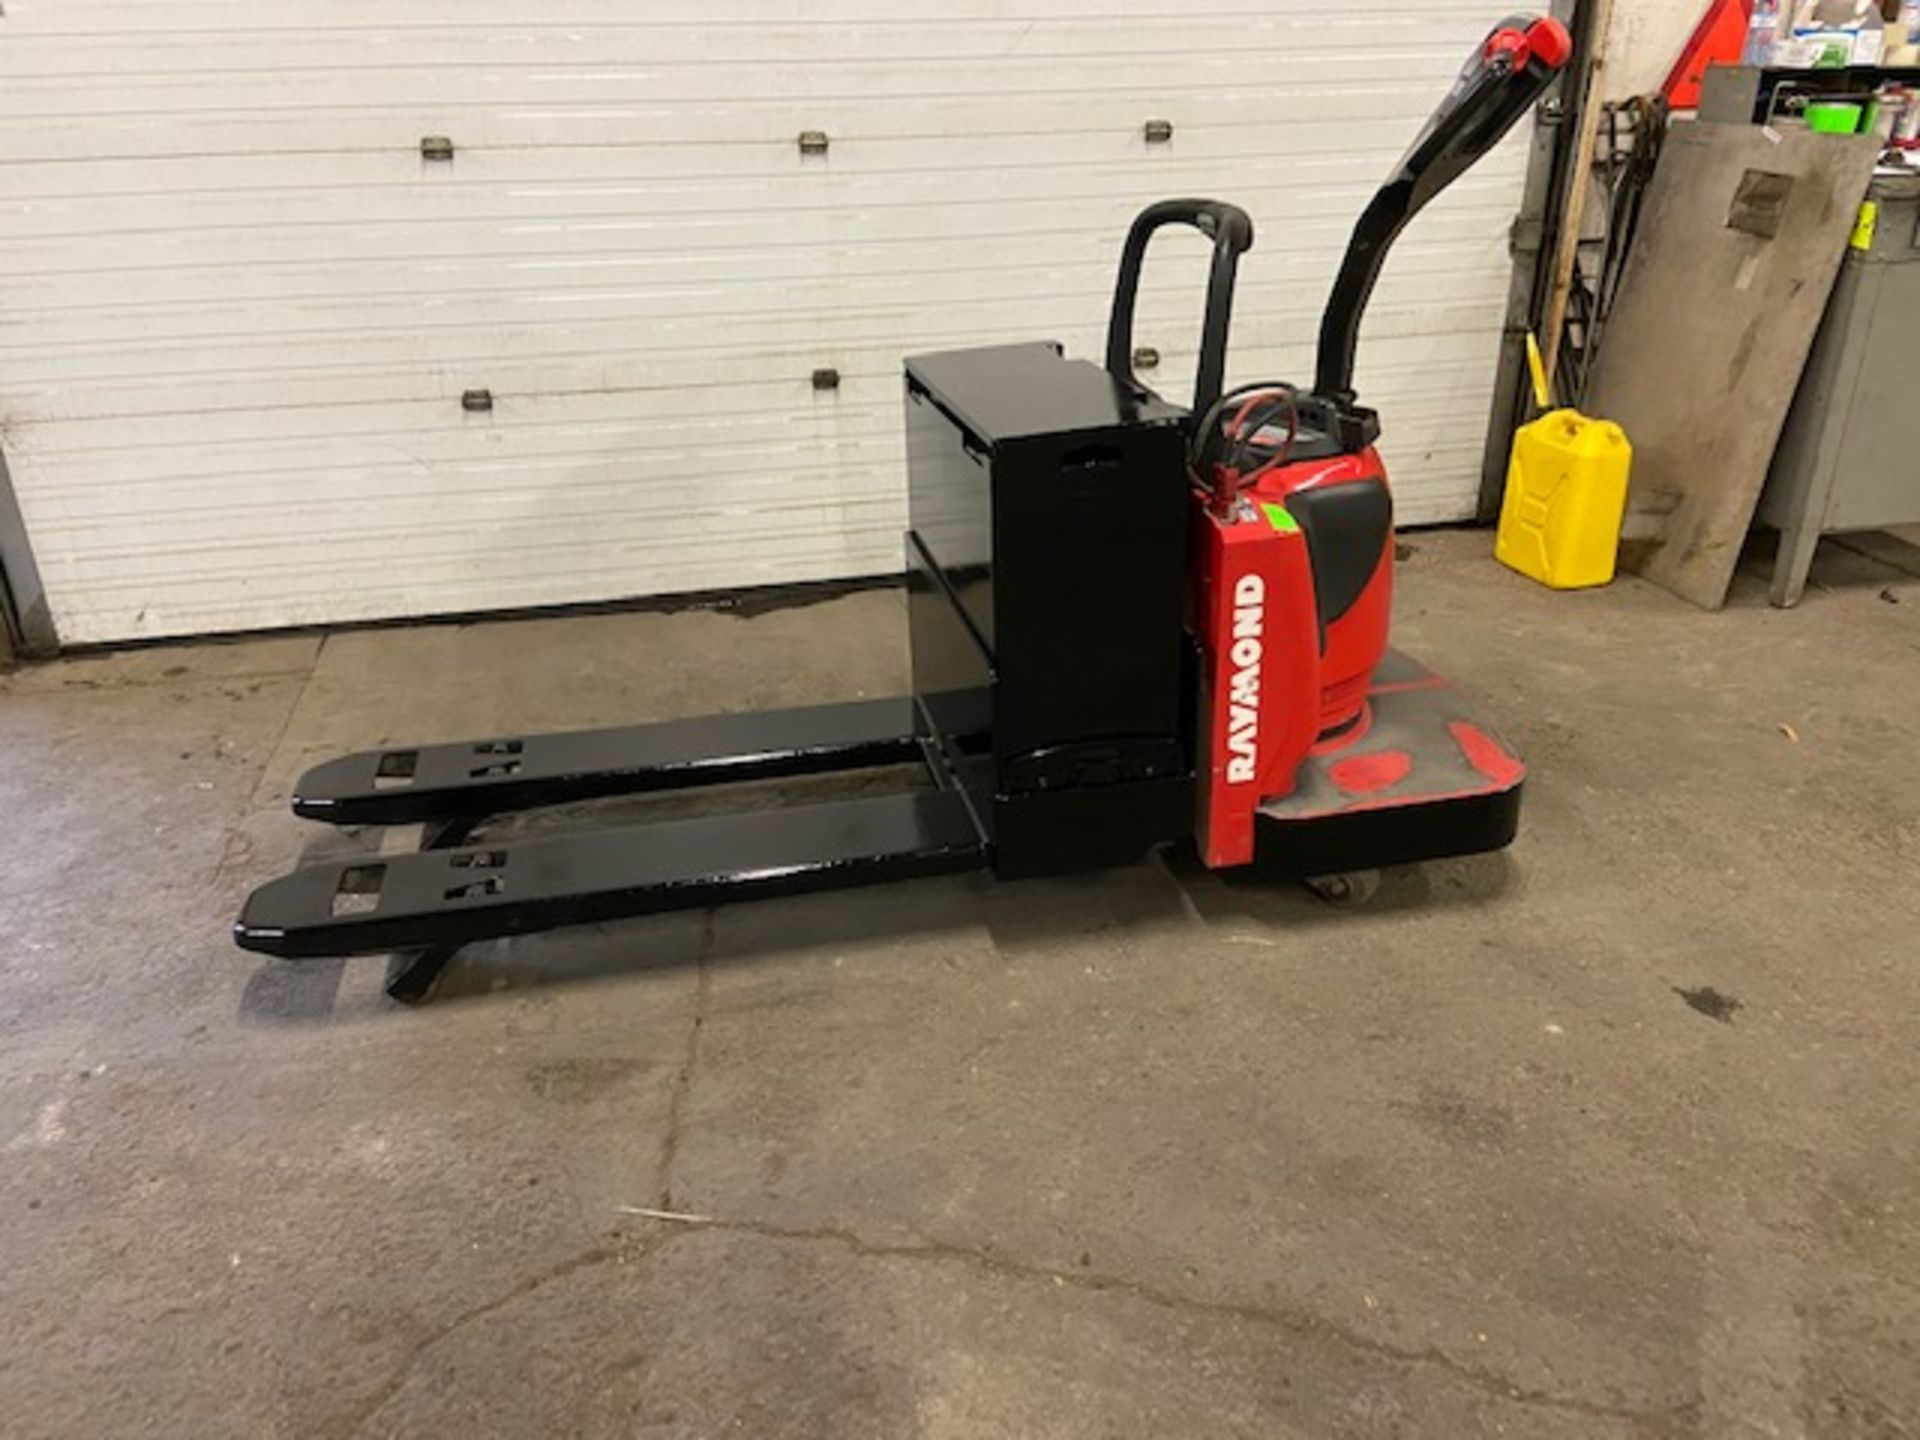 2012 Raymond Electric Ride on Powered Pallet Cart Lift 6000lbs capacity 4' Long with LOW HOURS